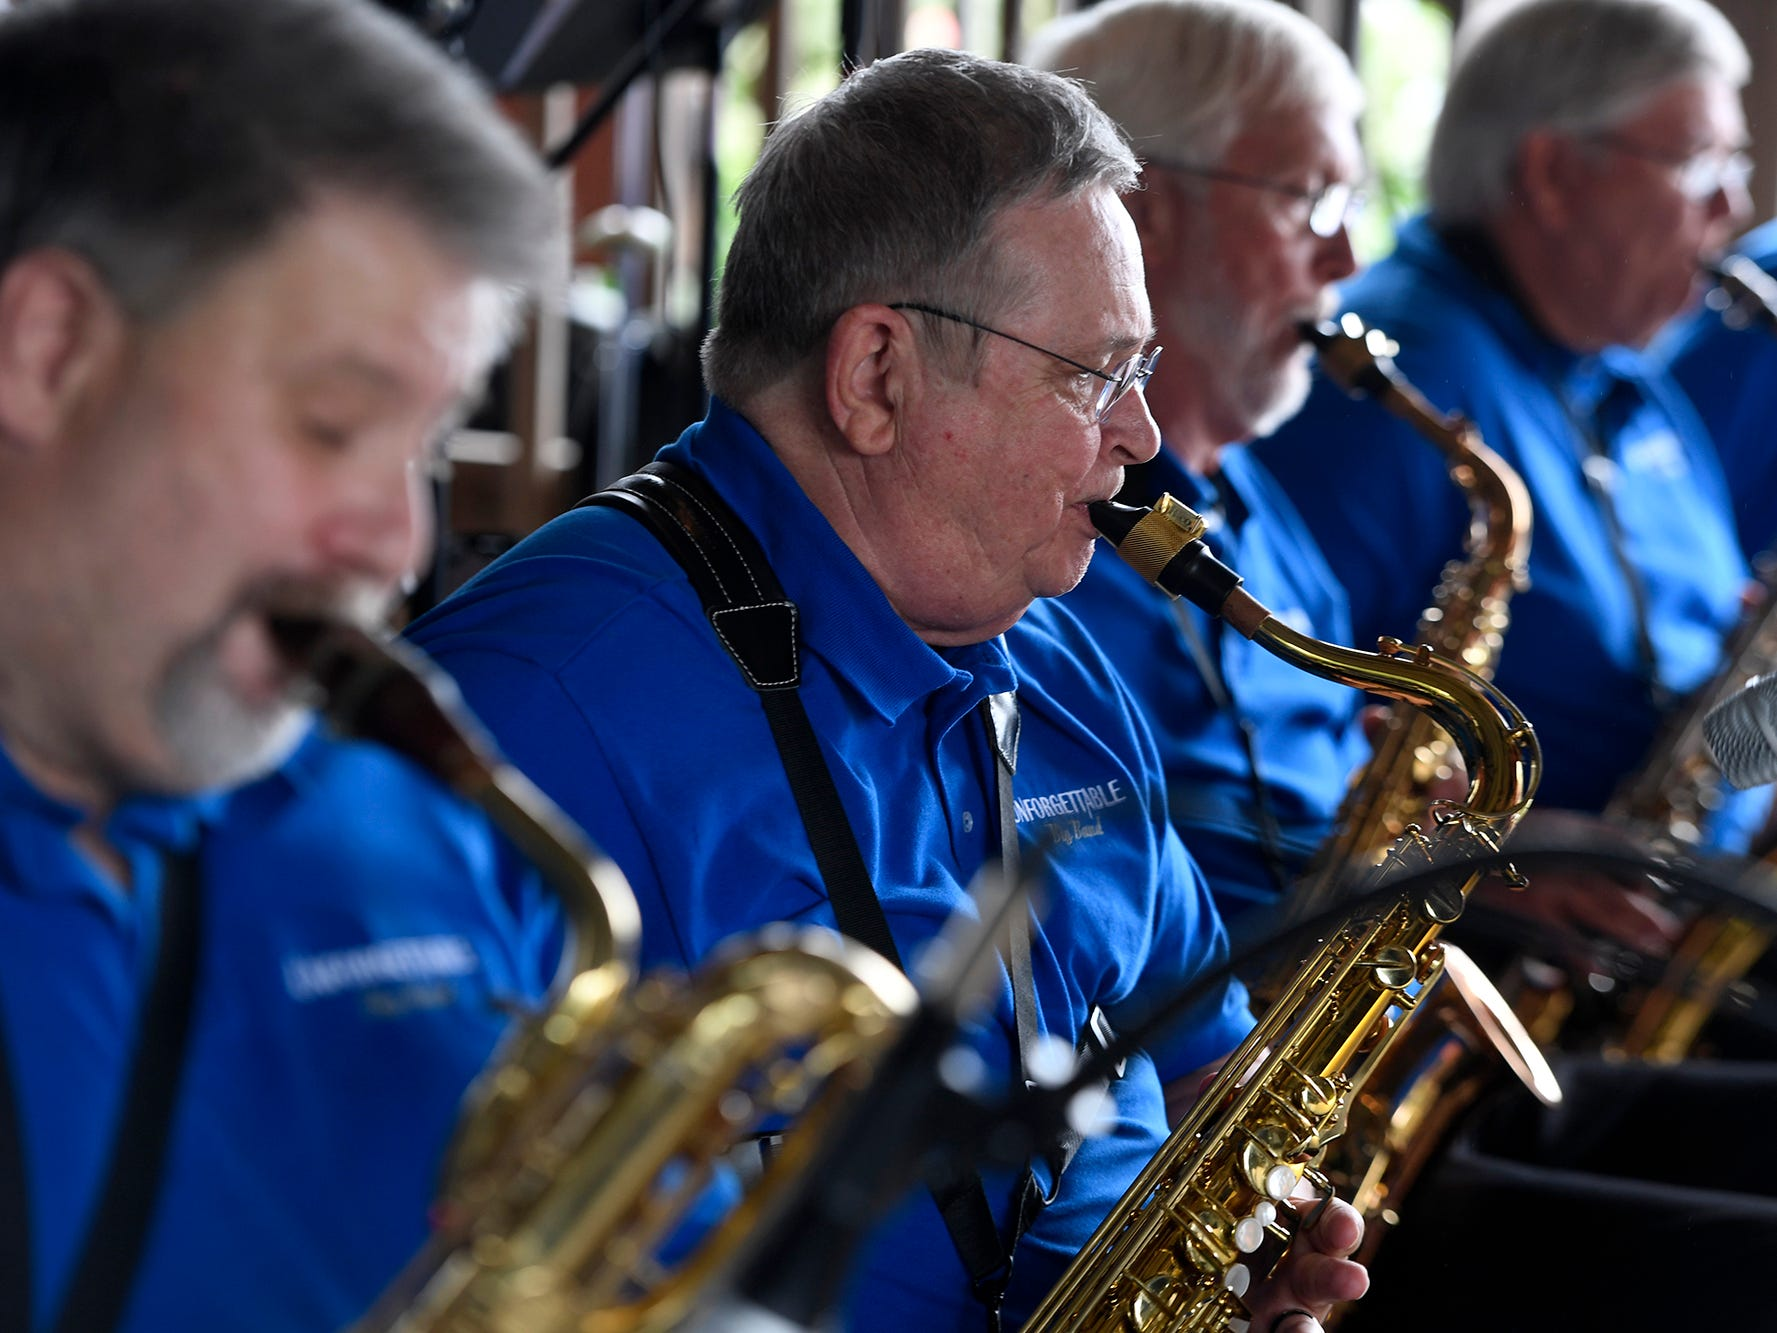 York's Unforgettable Big Band performs at Brown's Orchard & Farm Market, Sunday, August 18,  2018. John A. Pavoncello photo